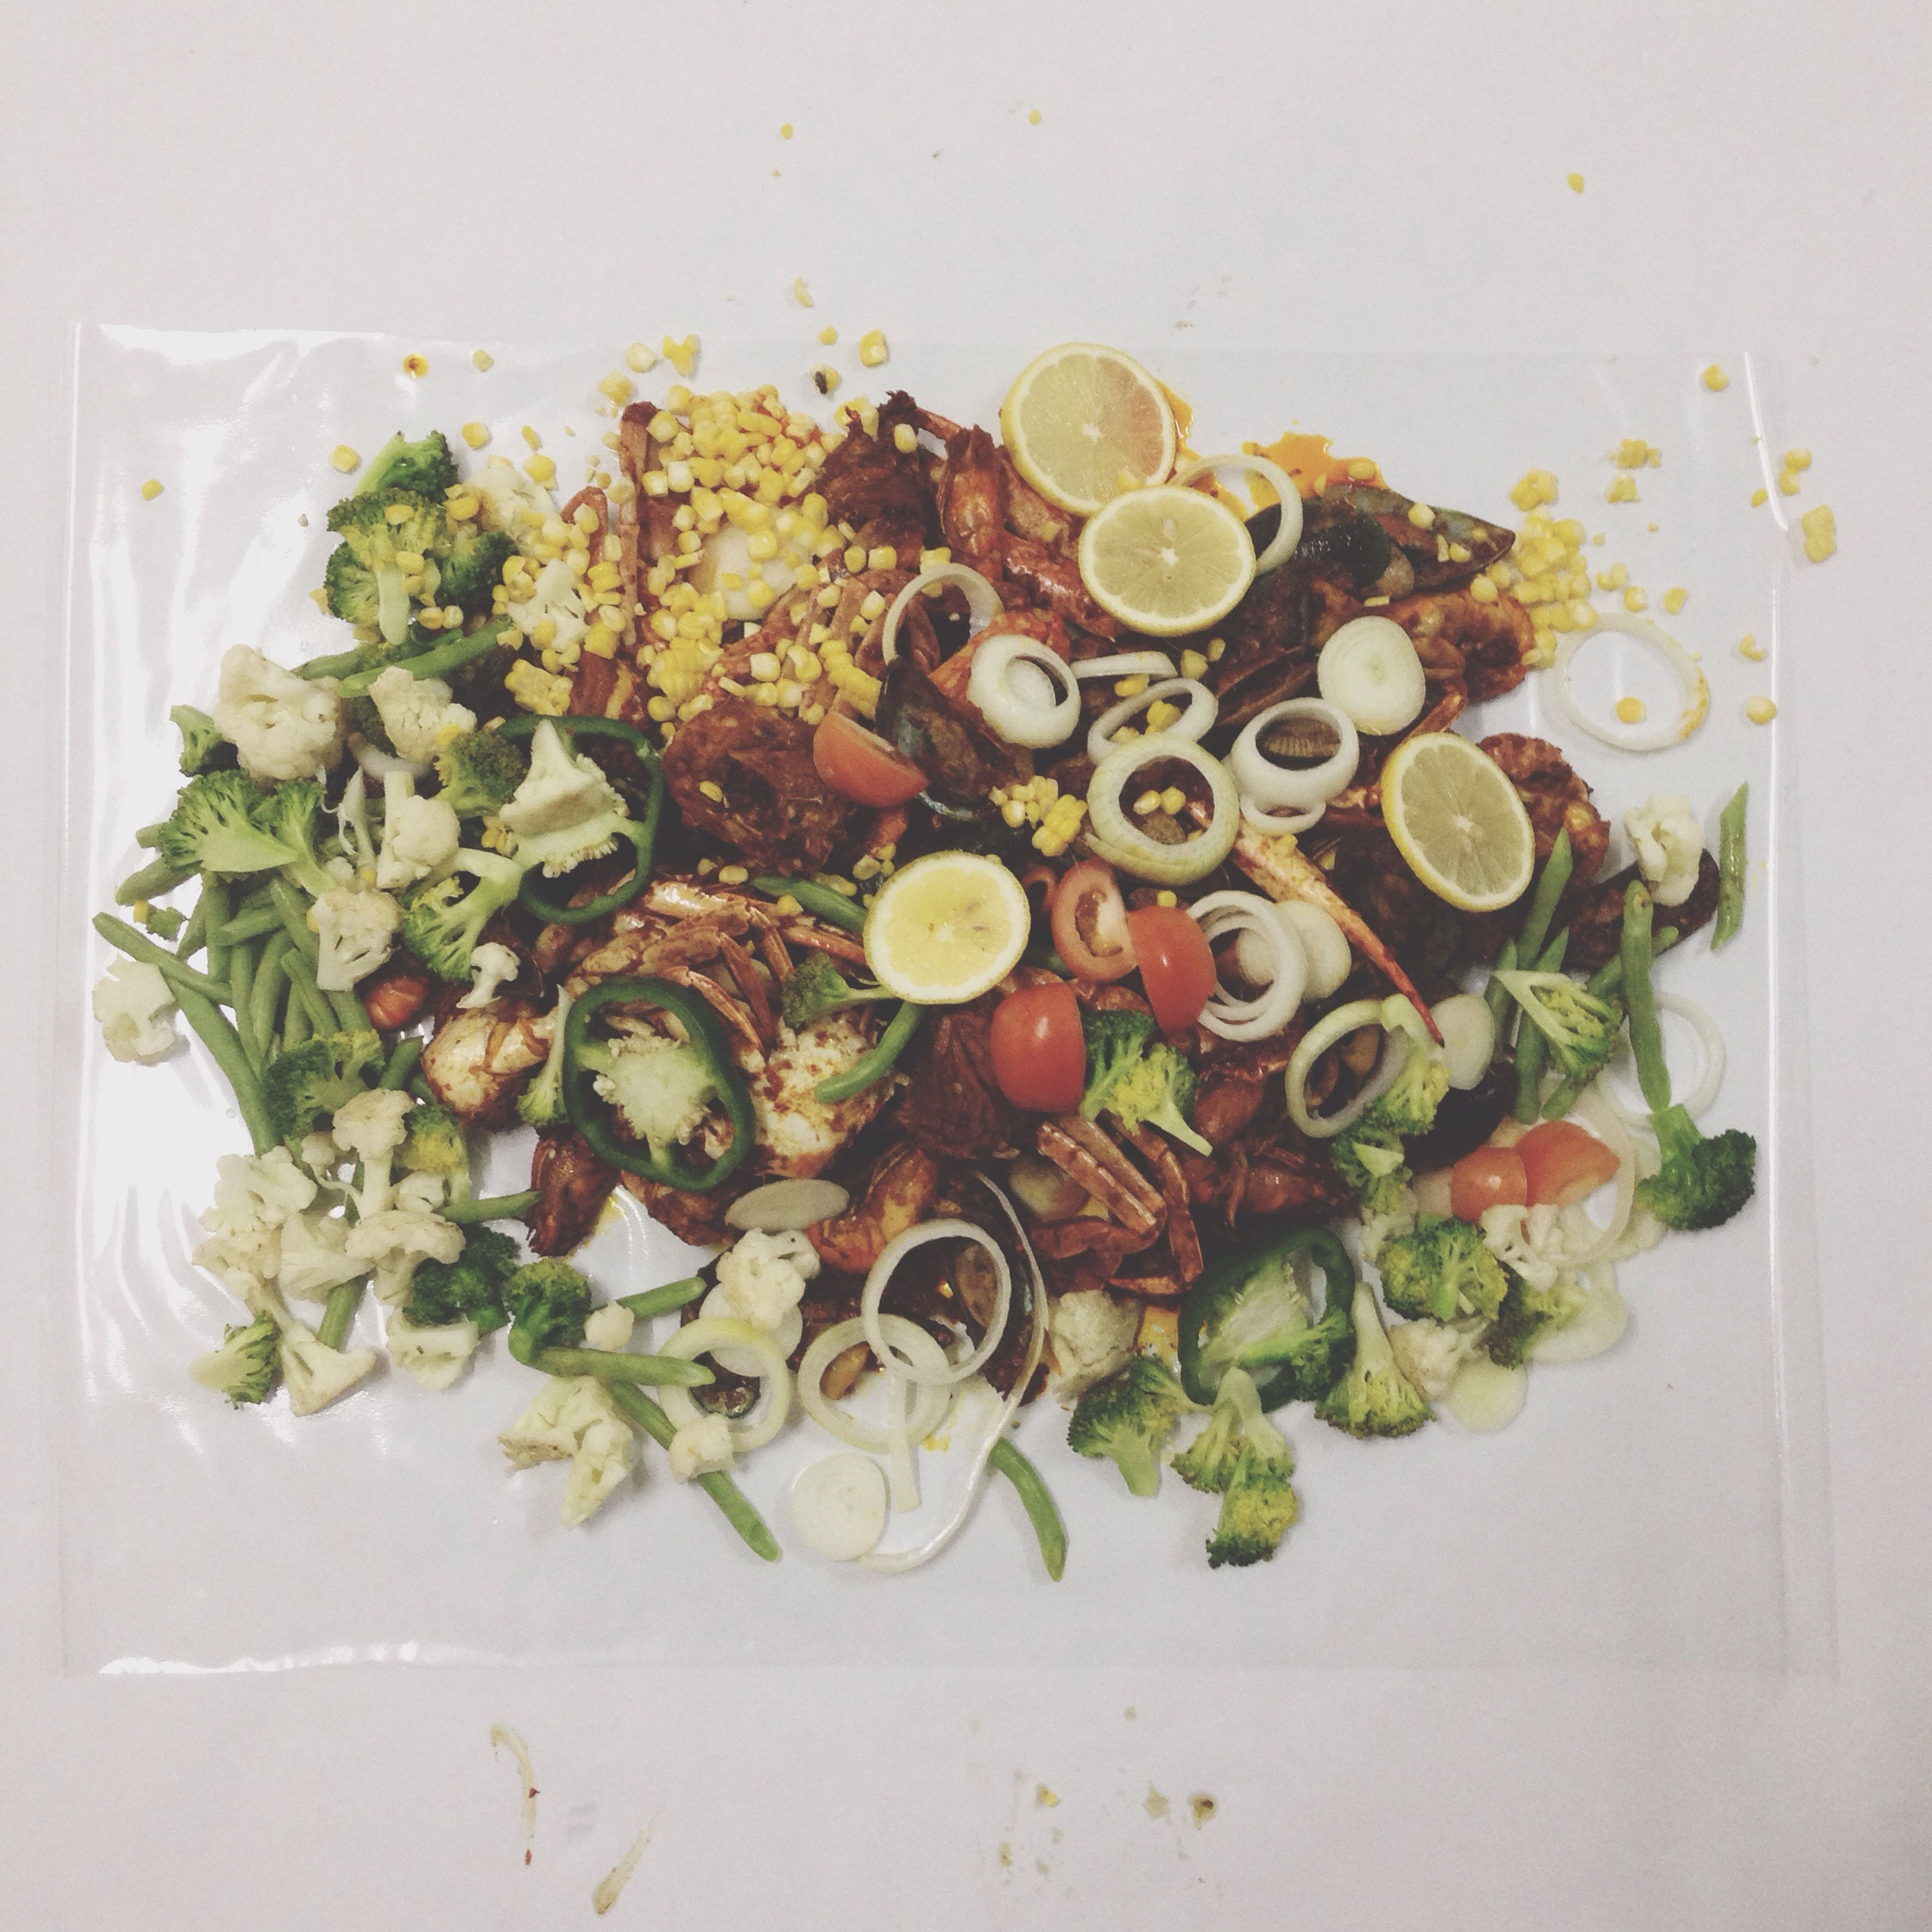 food, food and drink, indoors, freshness, still life, healthy eating, plate, ready-to-eat, table, high angle view, vegetable, directly above, indulgence, serving size, close-up, meal, seafood, variation, no people, bowl